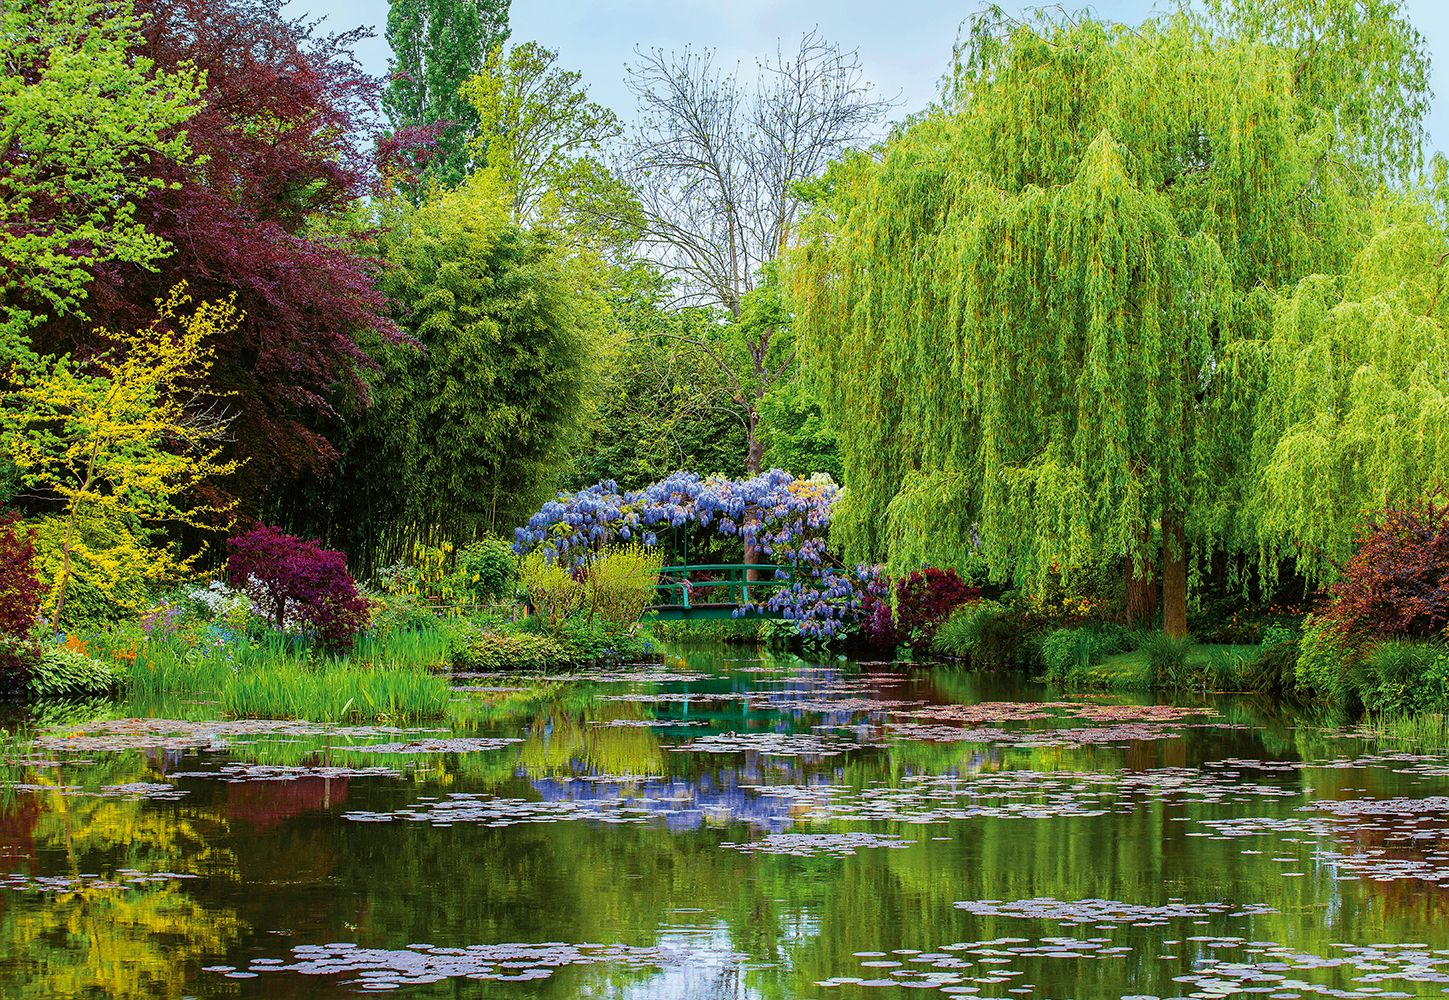 Valokuvatapetti Idealdecor Digital Monet's Garden In France 4-osaa 5035-4V-1 254x368 cm